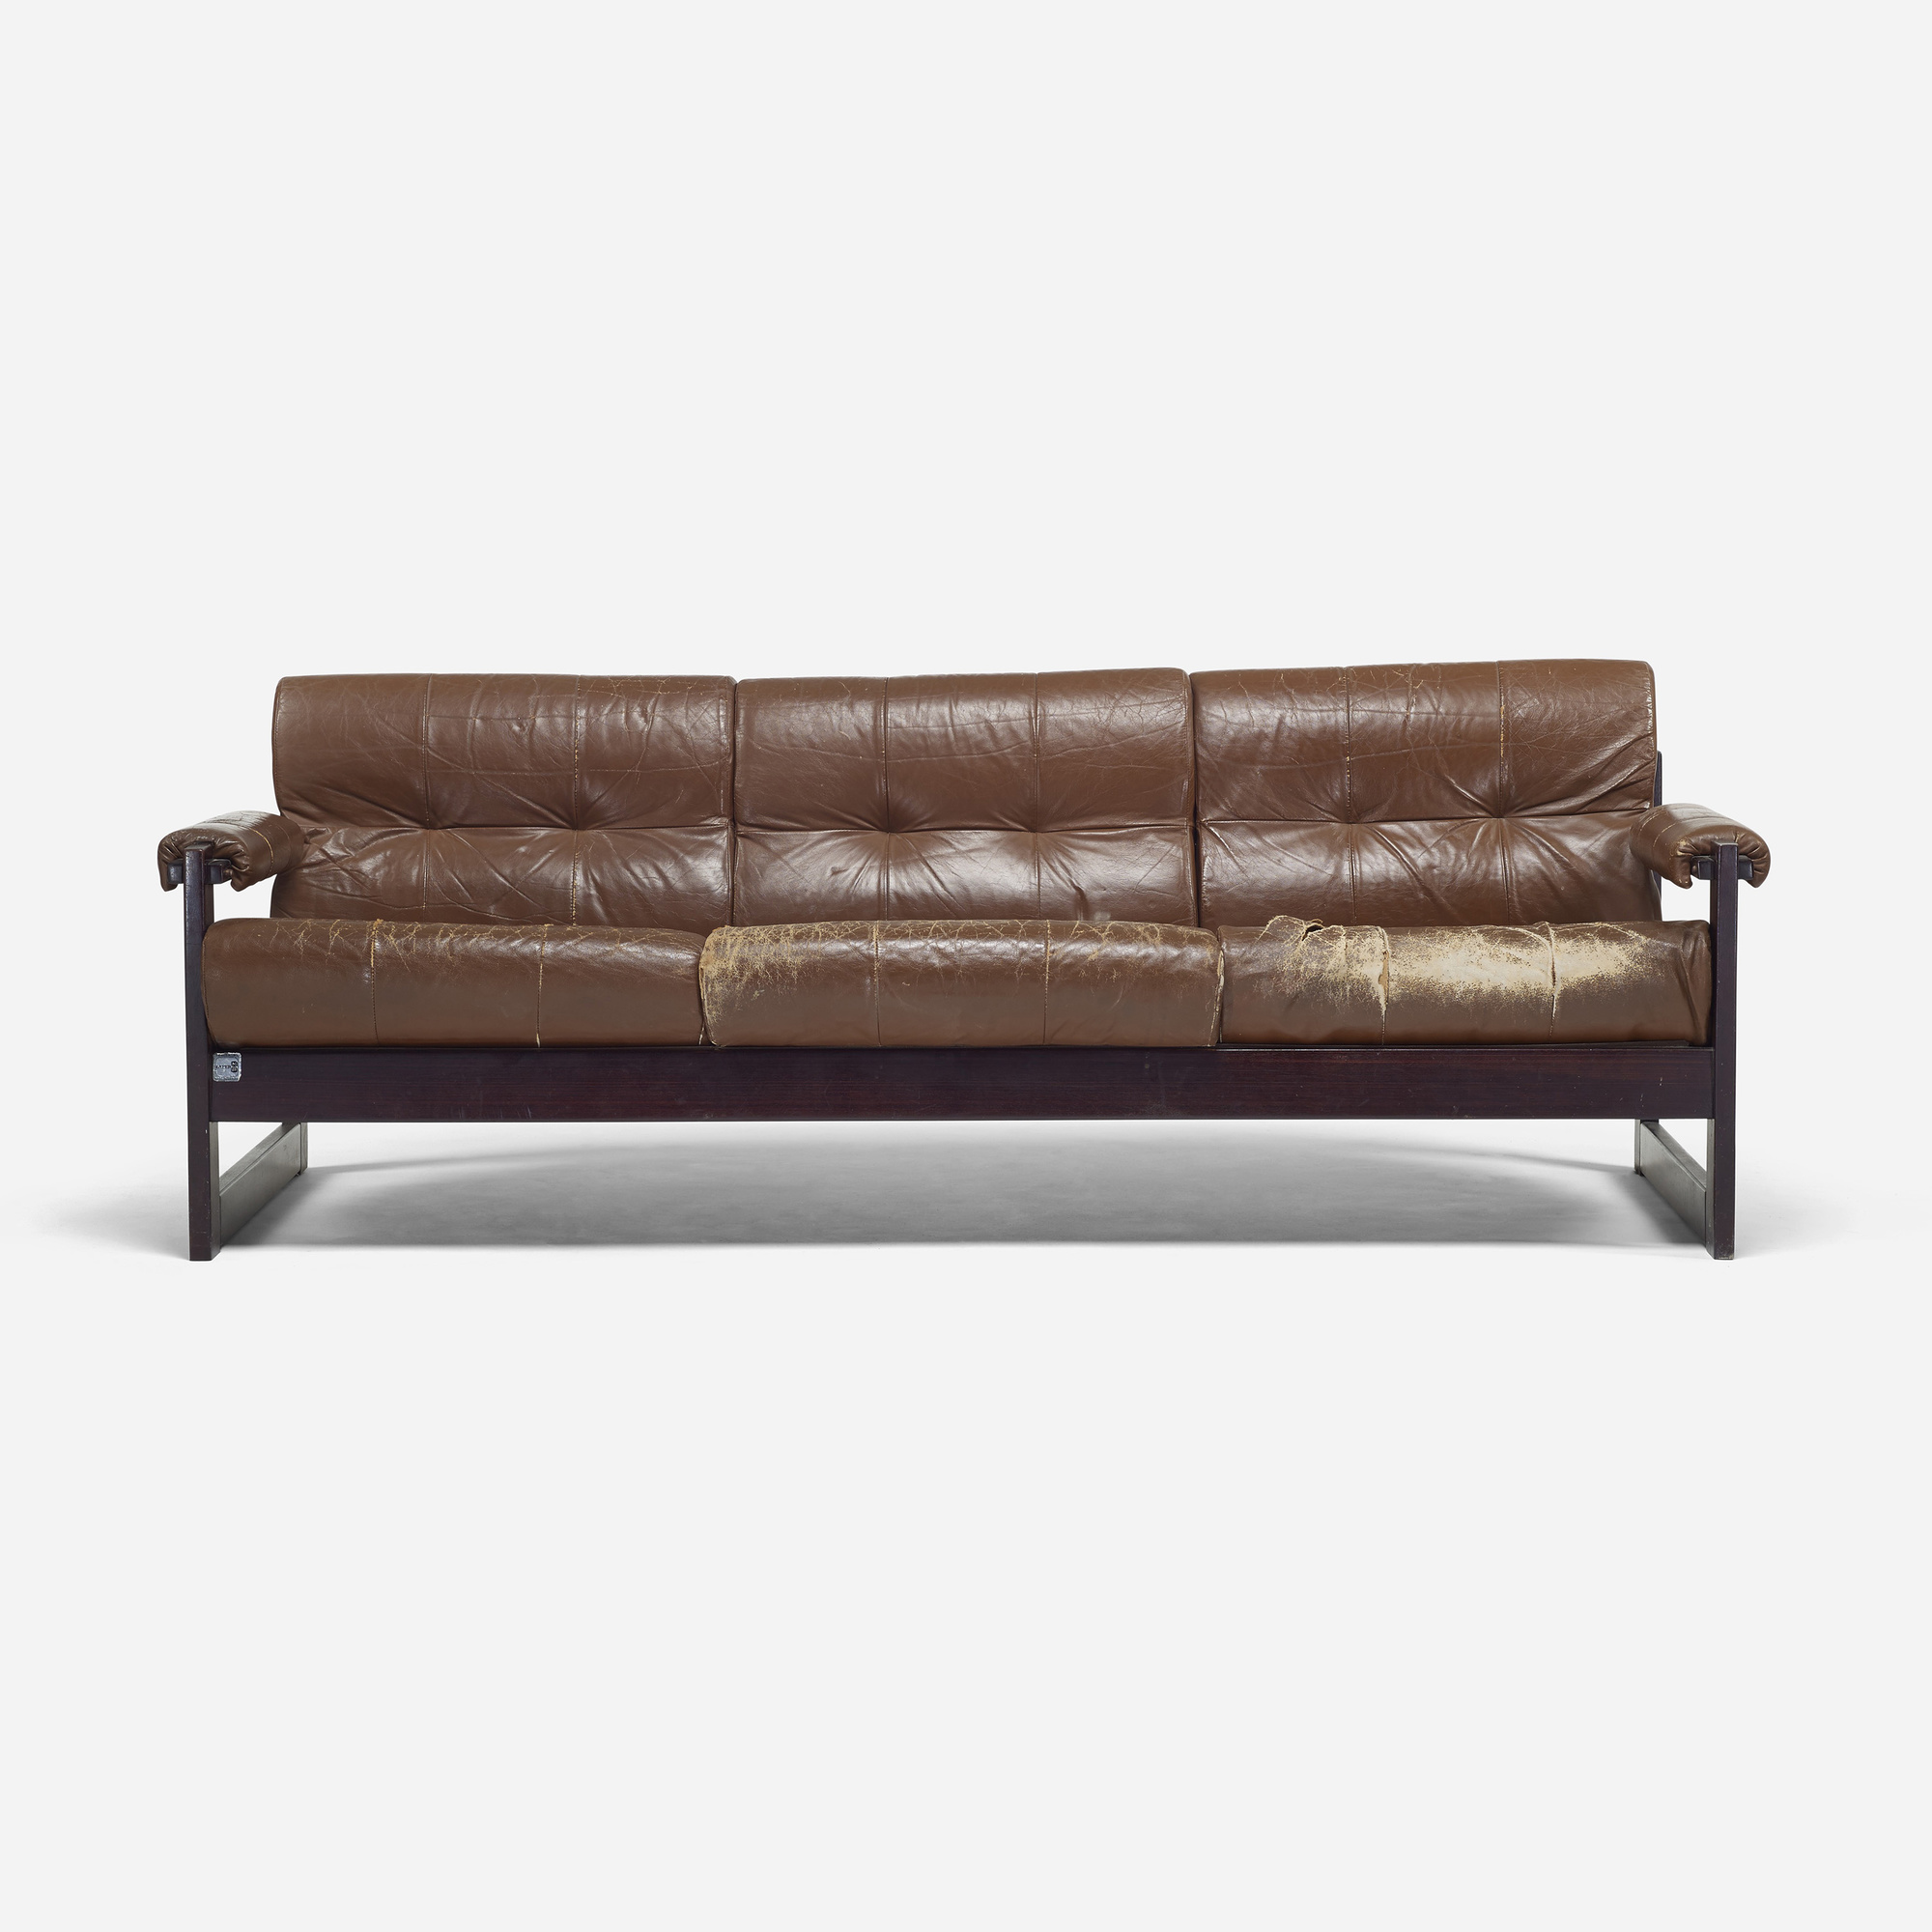 percival lafer sofa laura ashley mortimer 2 seater leather and rosewood at